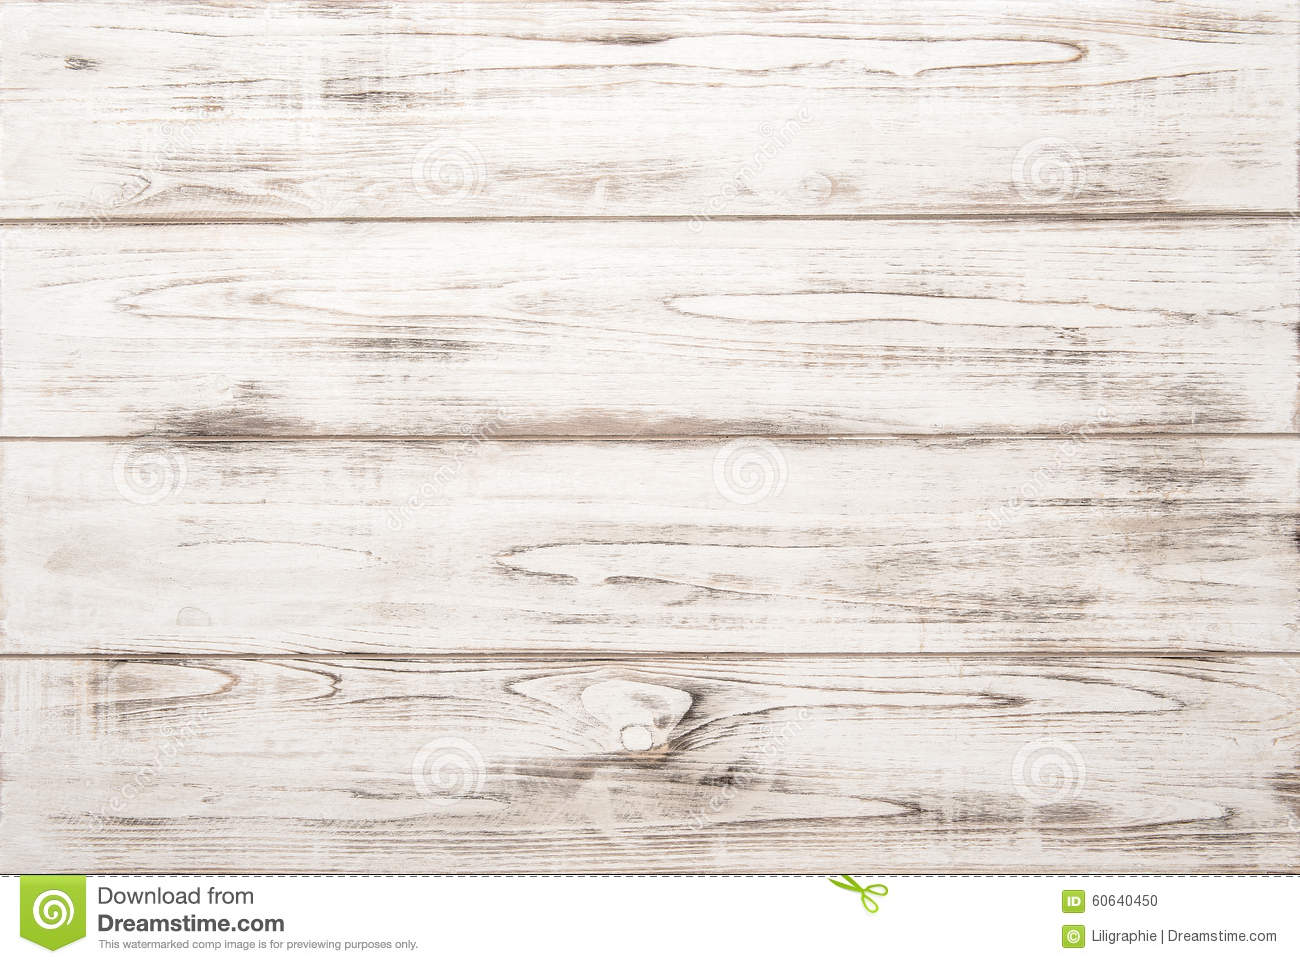 White wood texture background with natural patterns